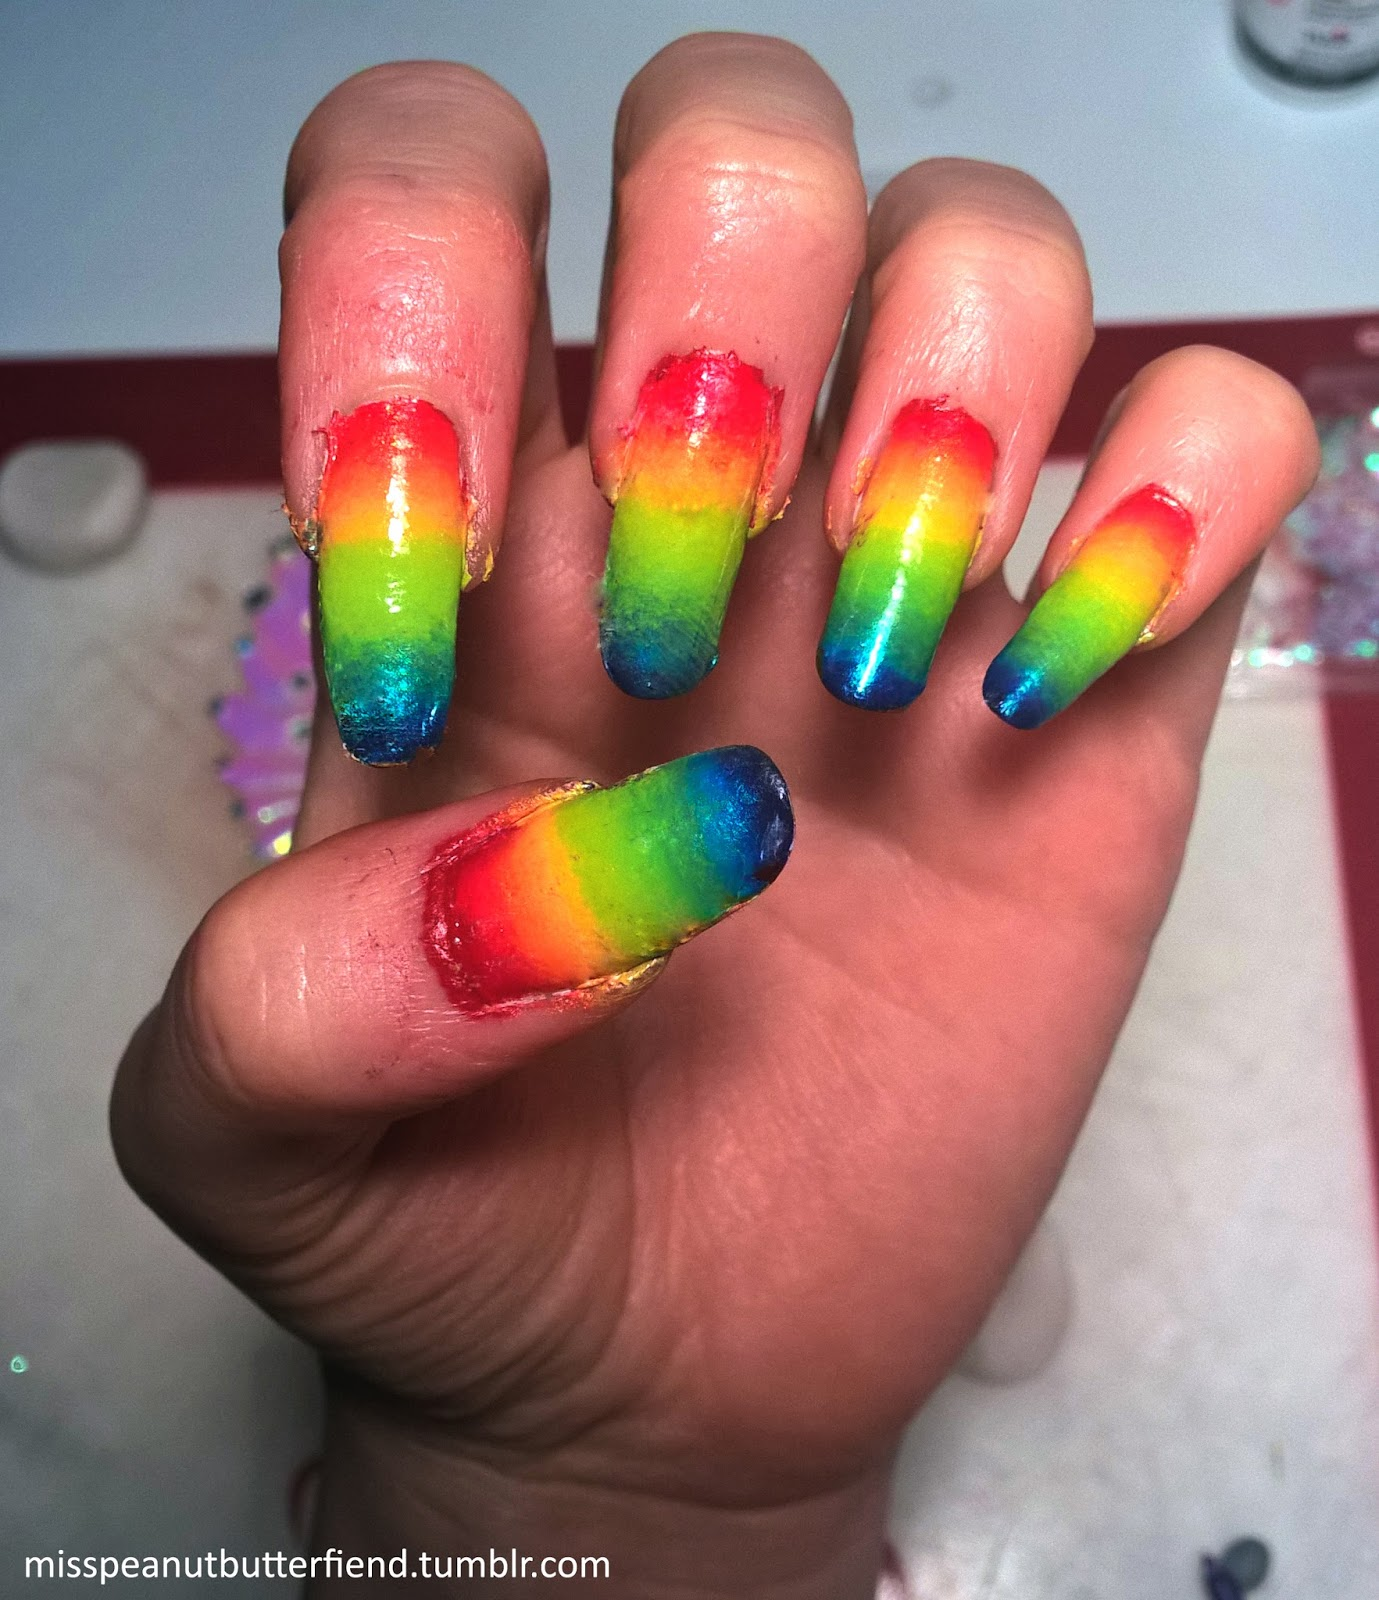 Pride Nail Designs: Ombre Nail Color & Design Ideas